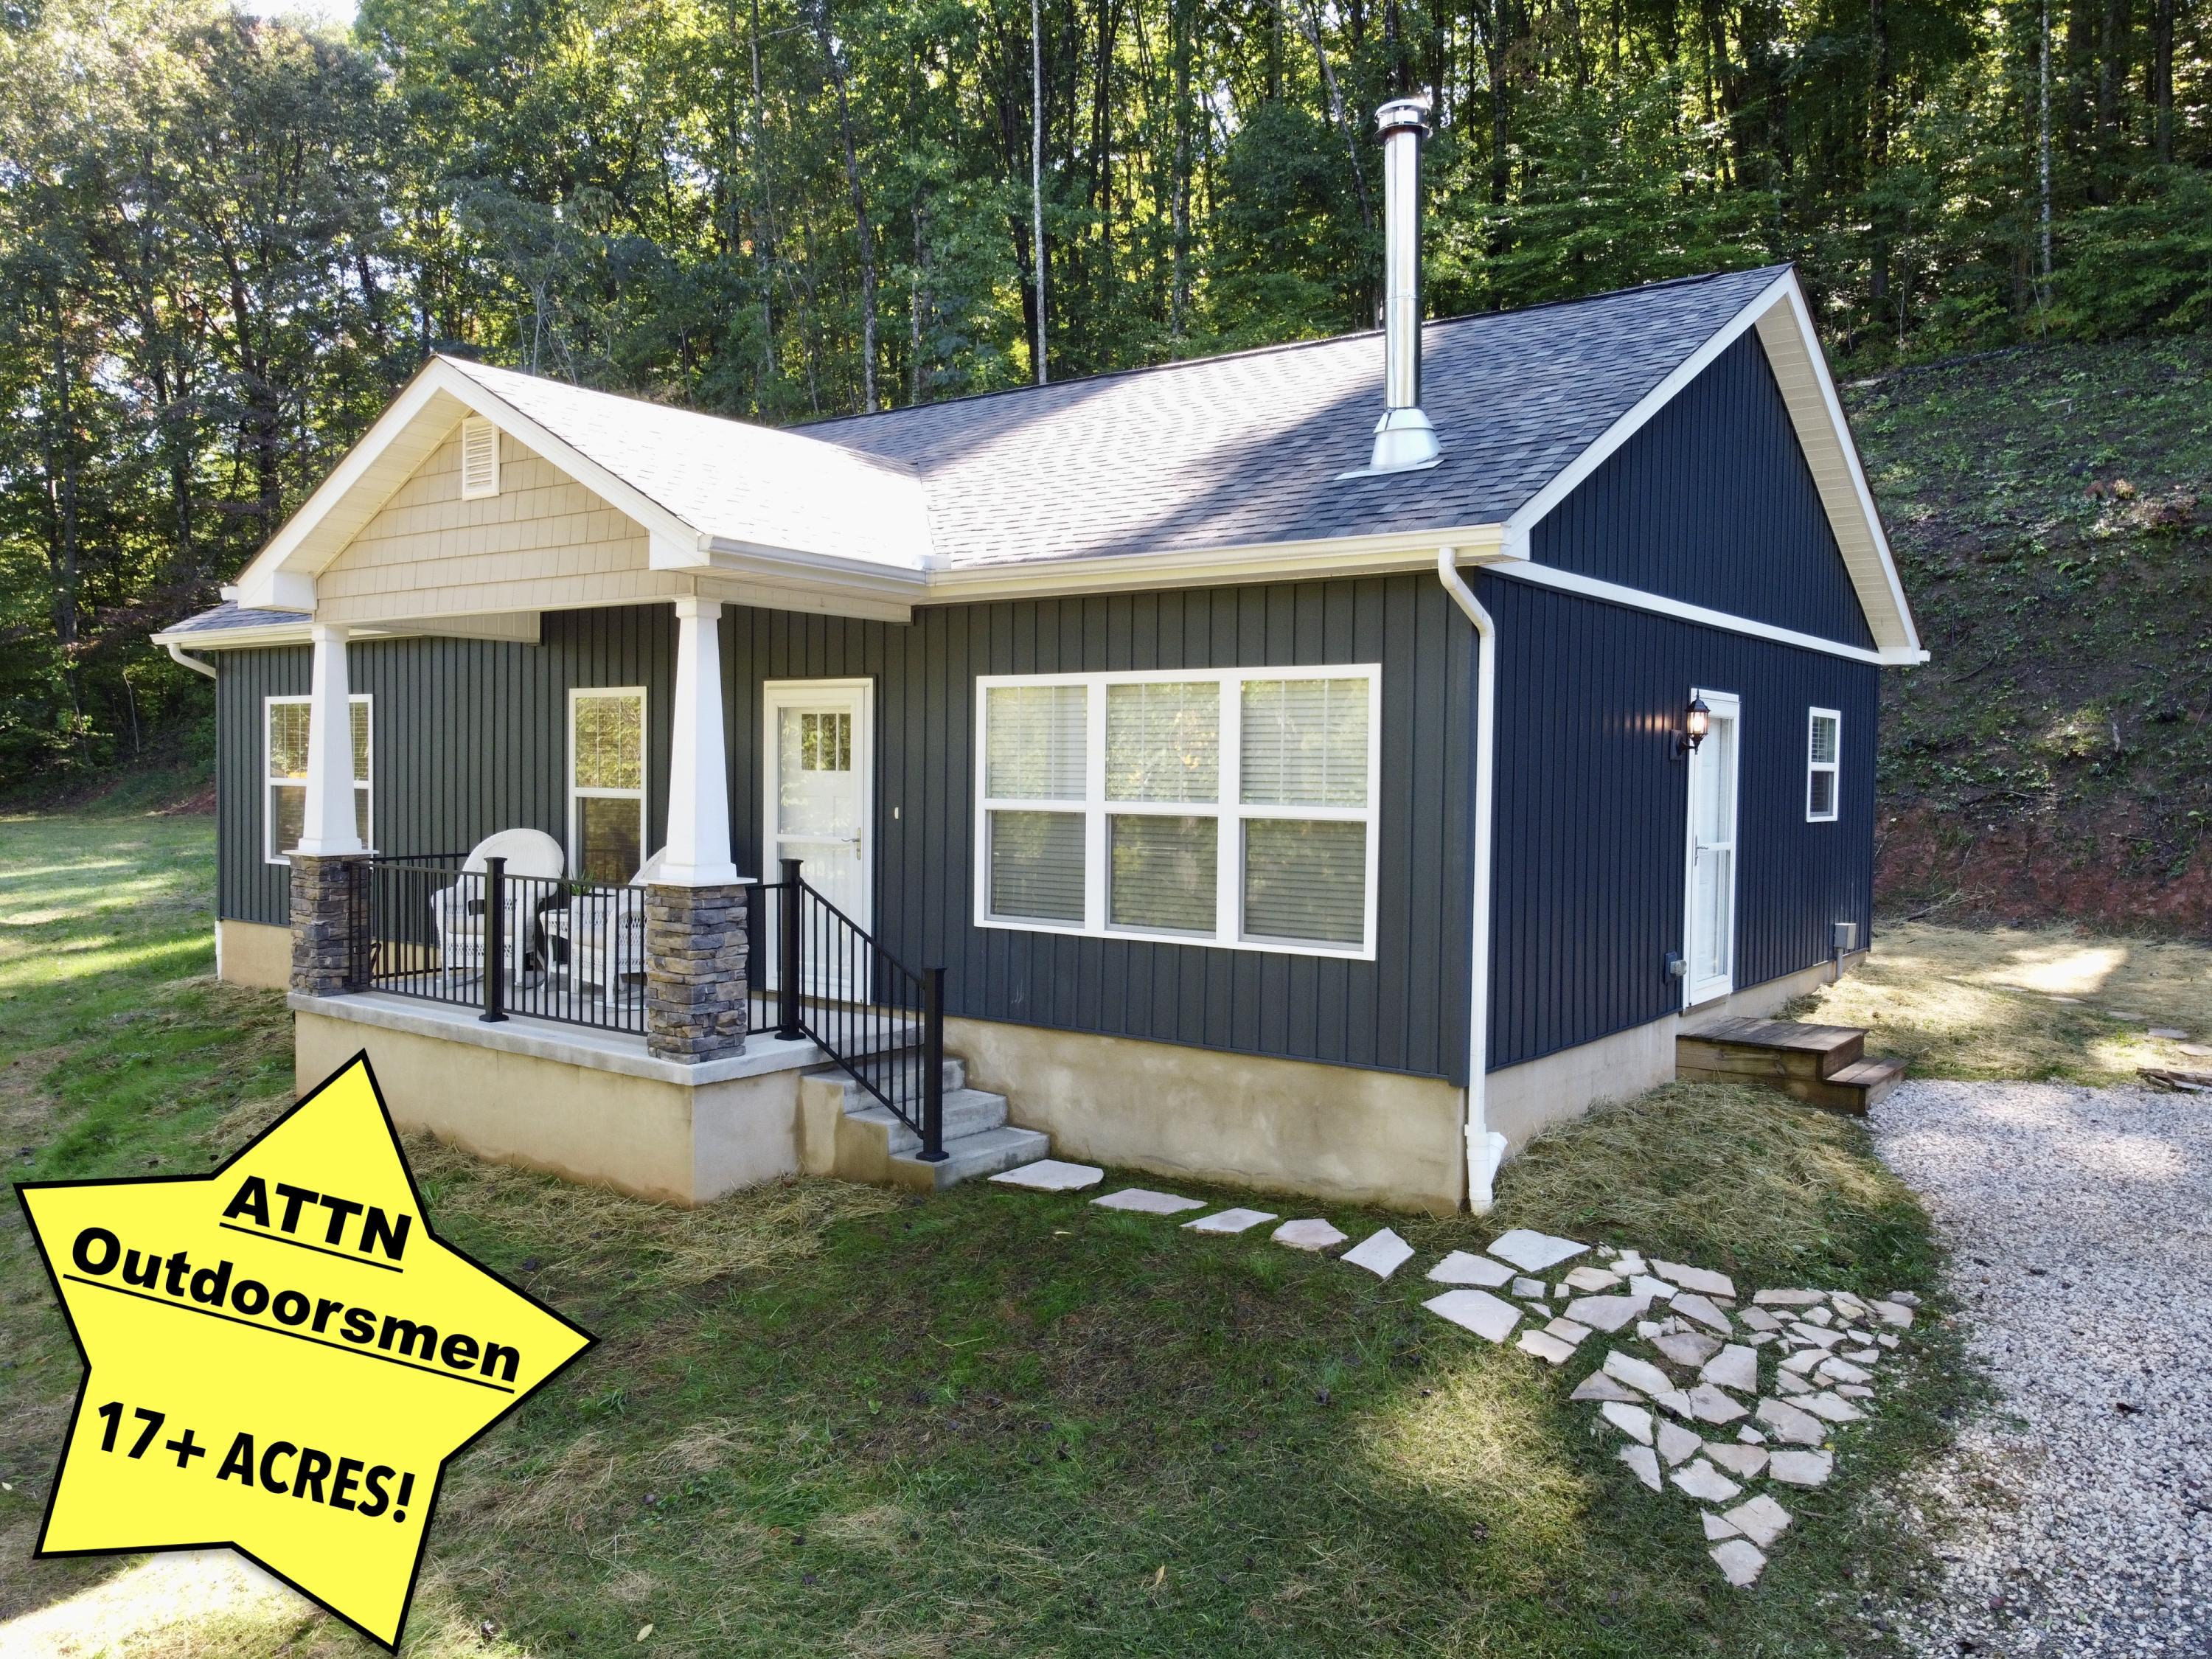 2204 Rhea Rd, Knoxville, Tennessee 37920, 2 Bedrooms Bedrooms, ,2 BathroomsBathrooms,Single Family,For Sale,Rhea,1131393